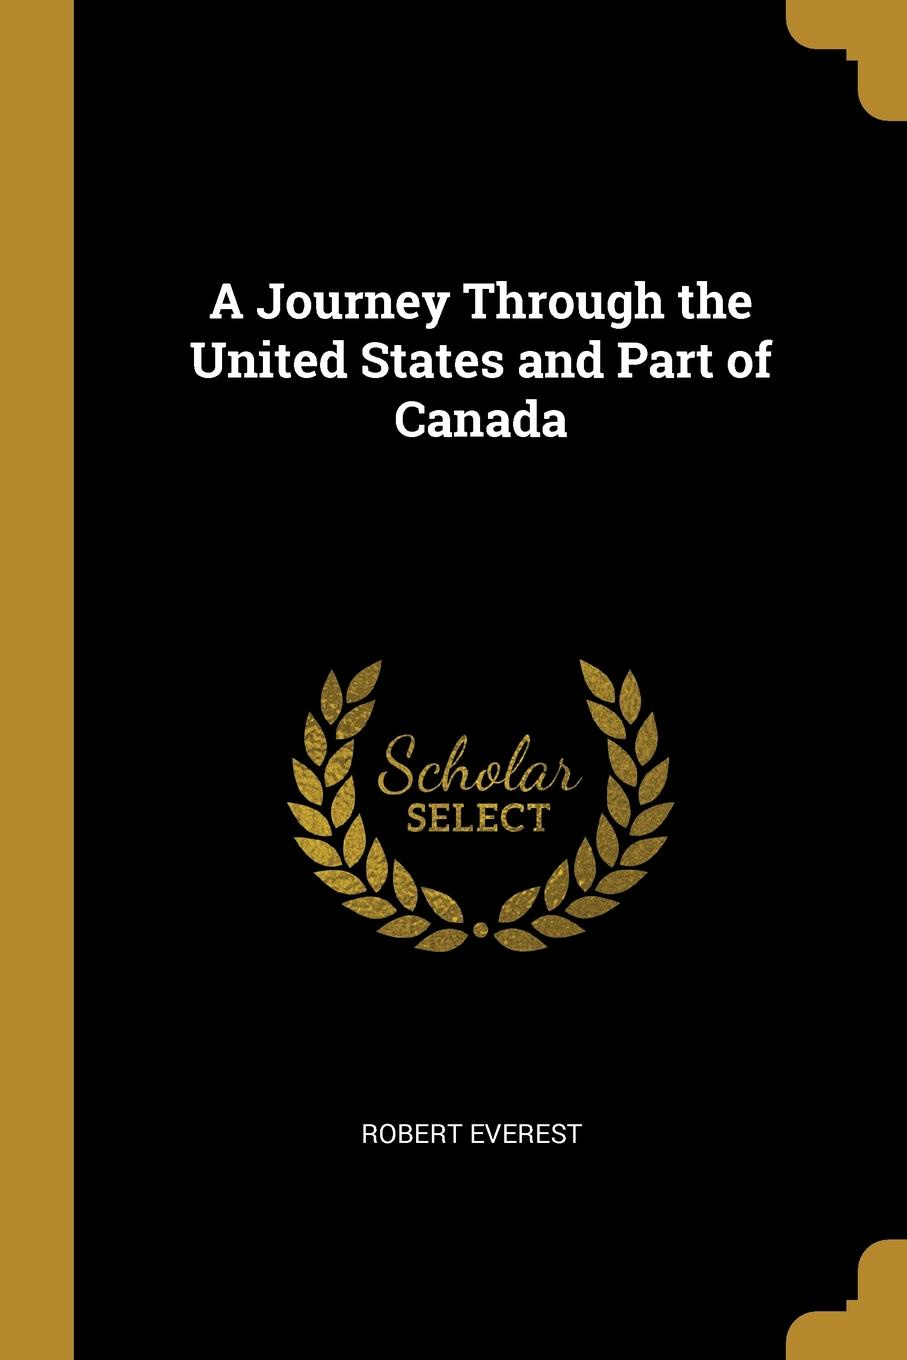 Robert Everest. A Journey Through the United States and Part of Canada